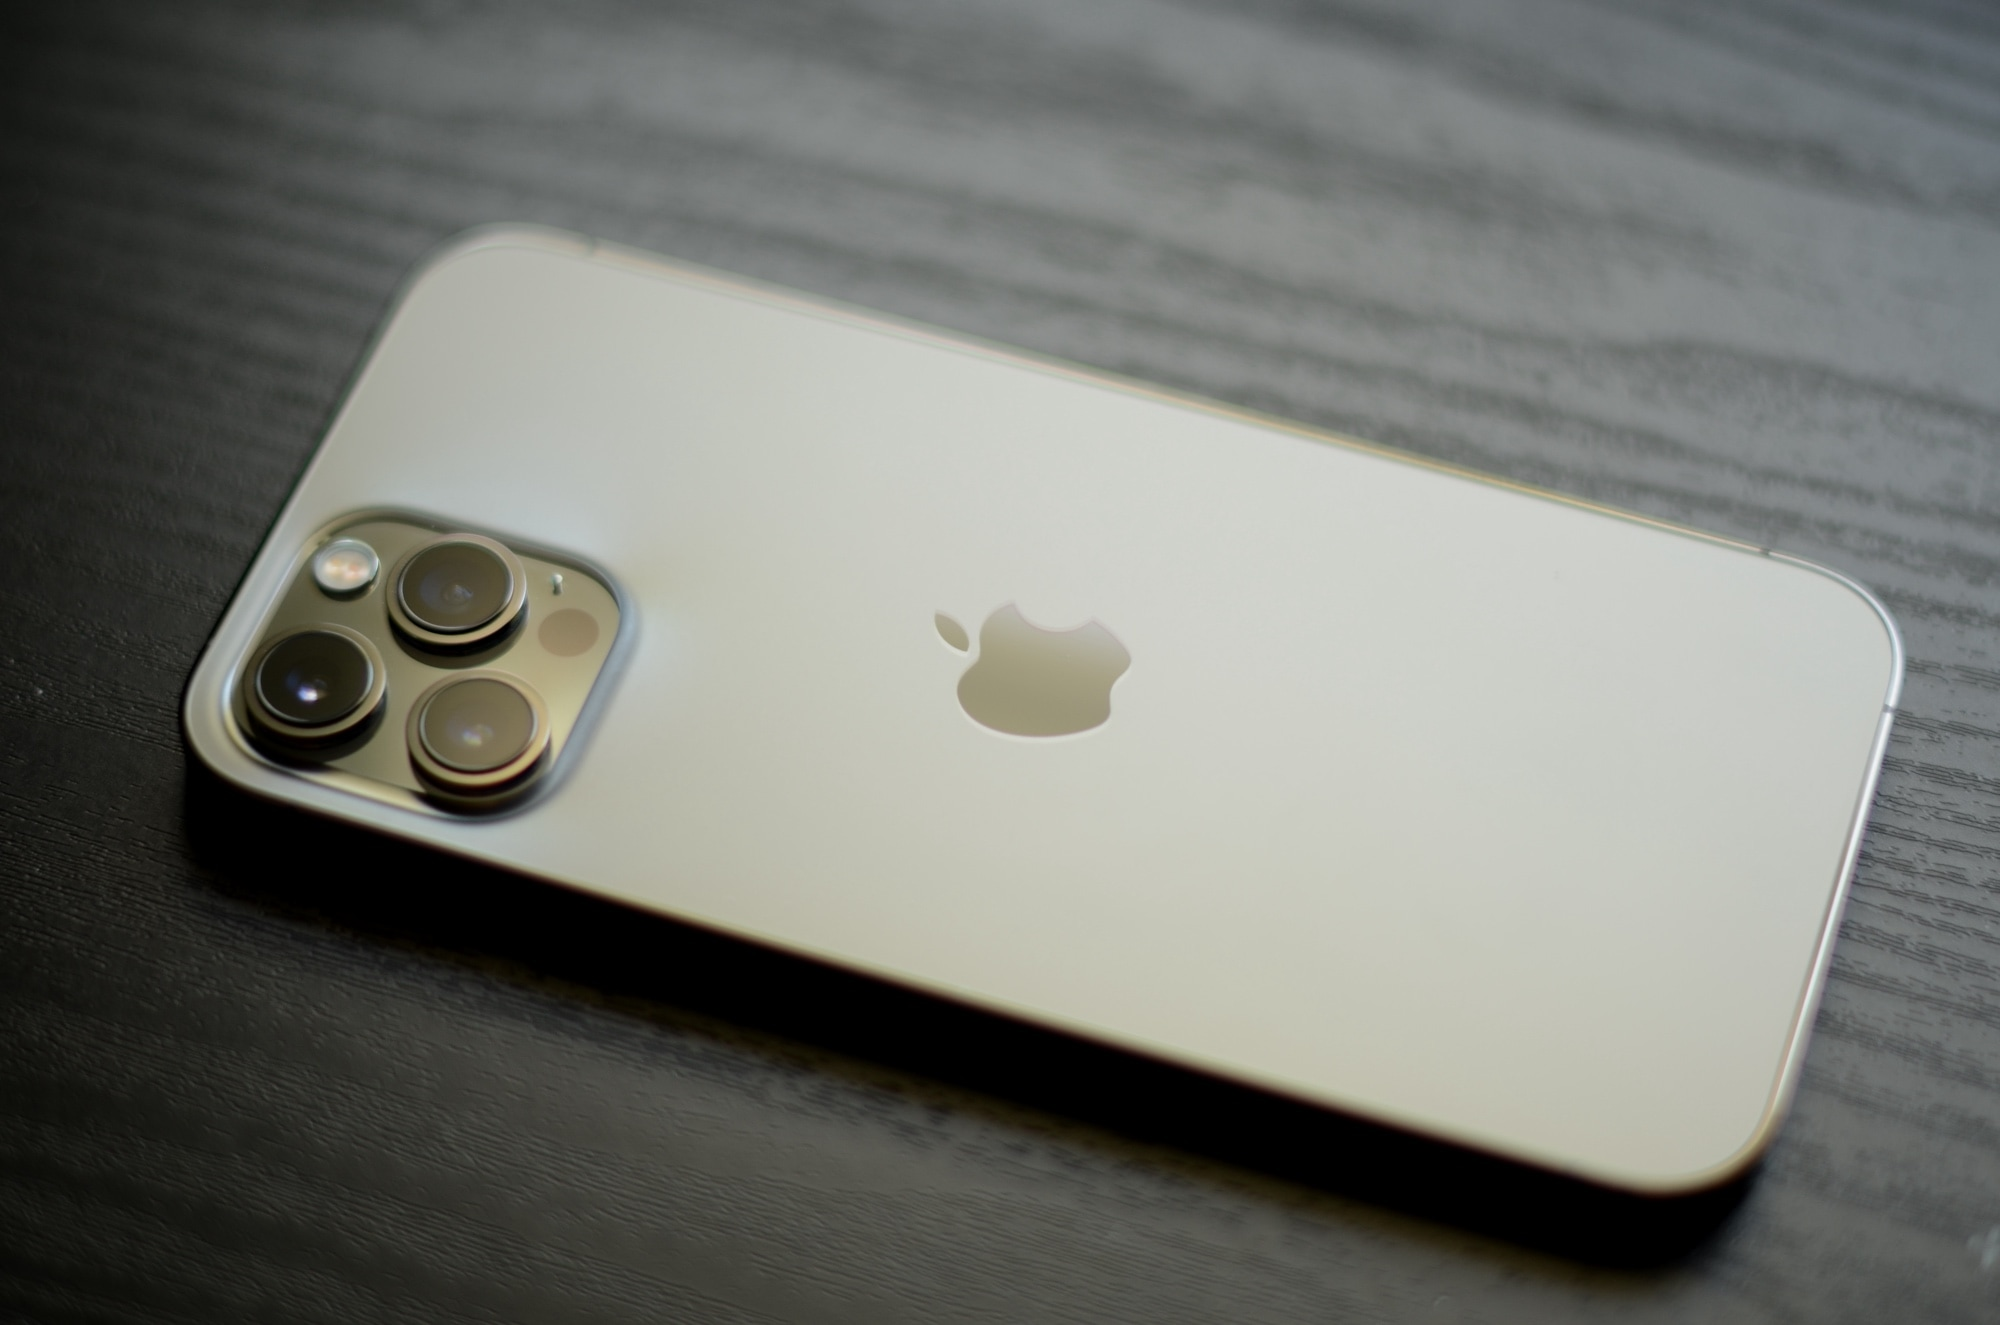 A gold iPhone 12 Pro Max laid face down on a wooden table